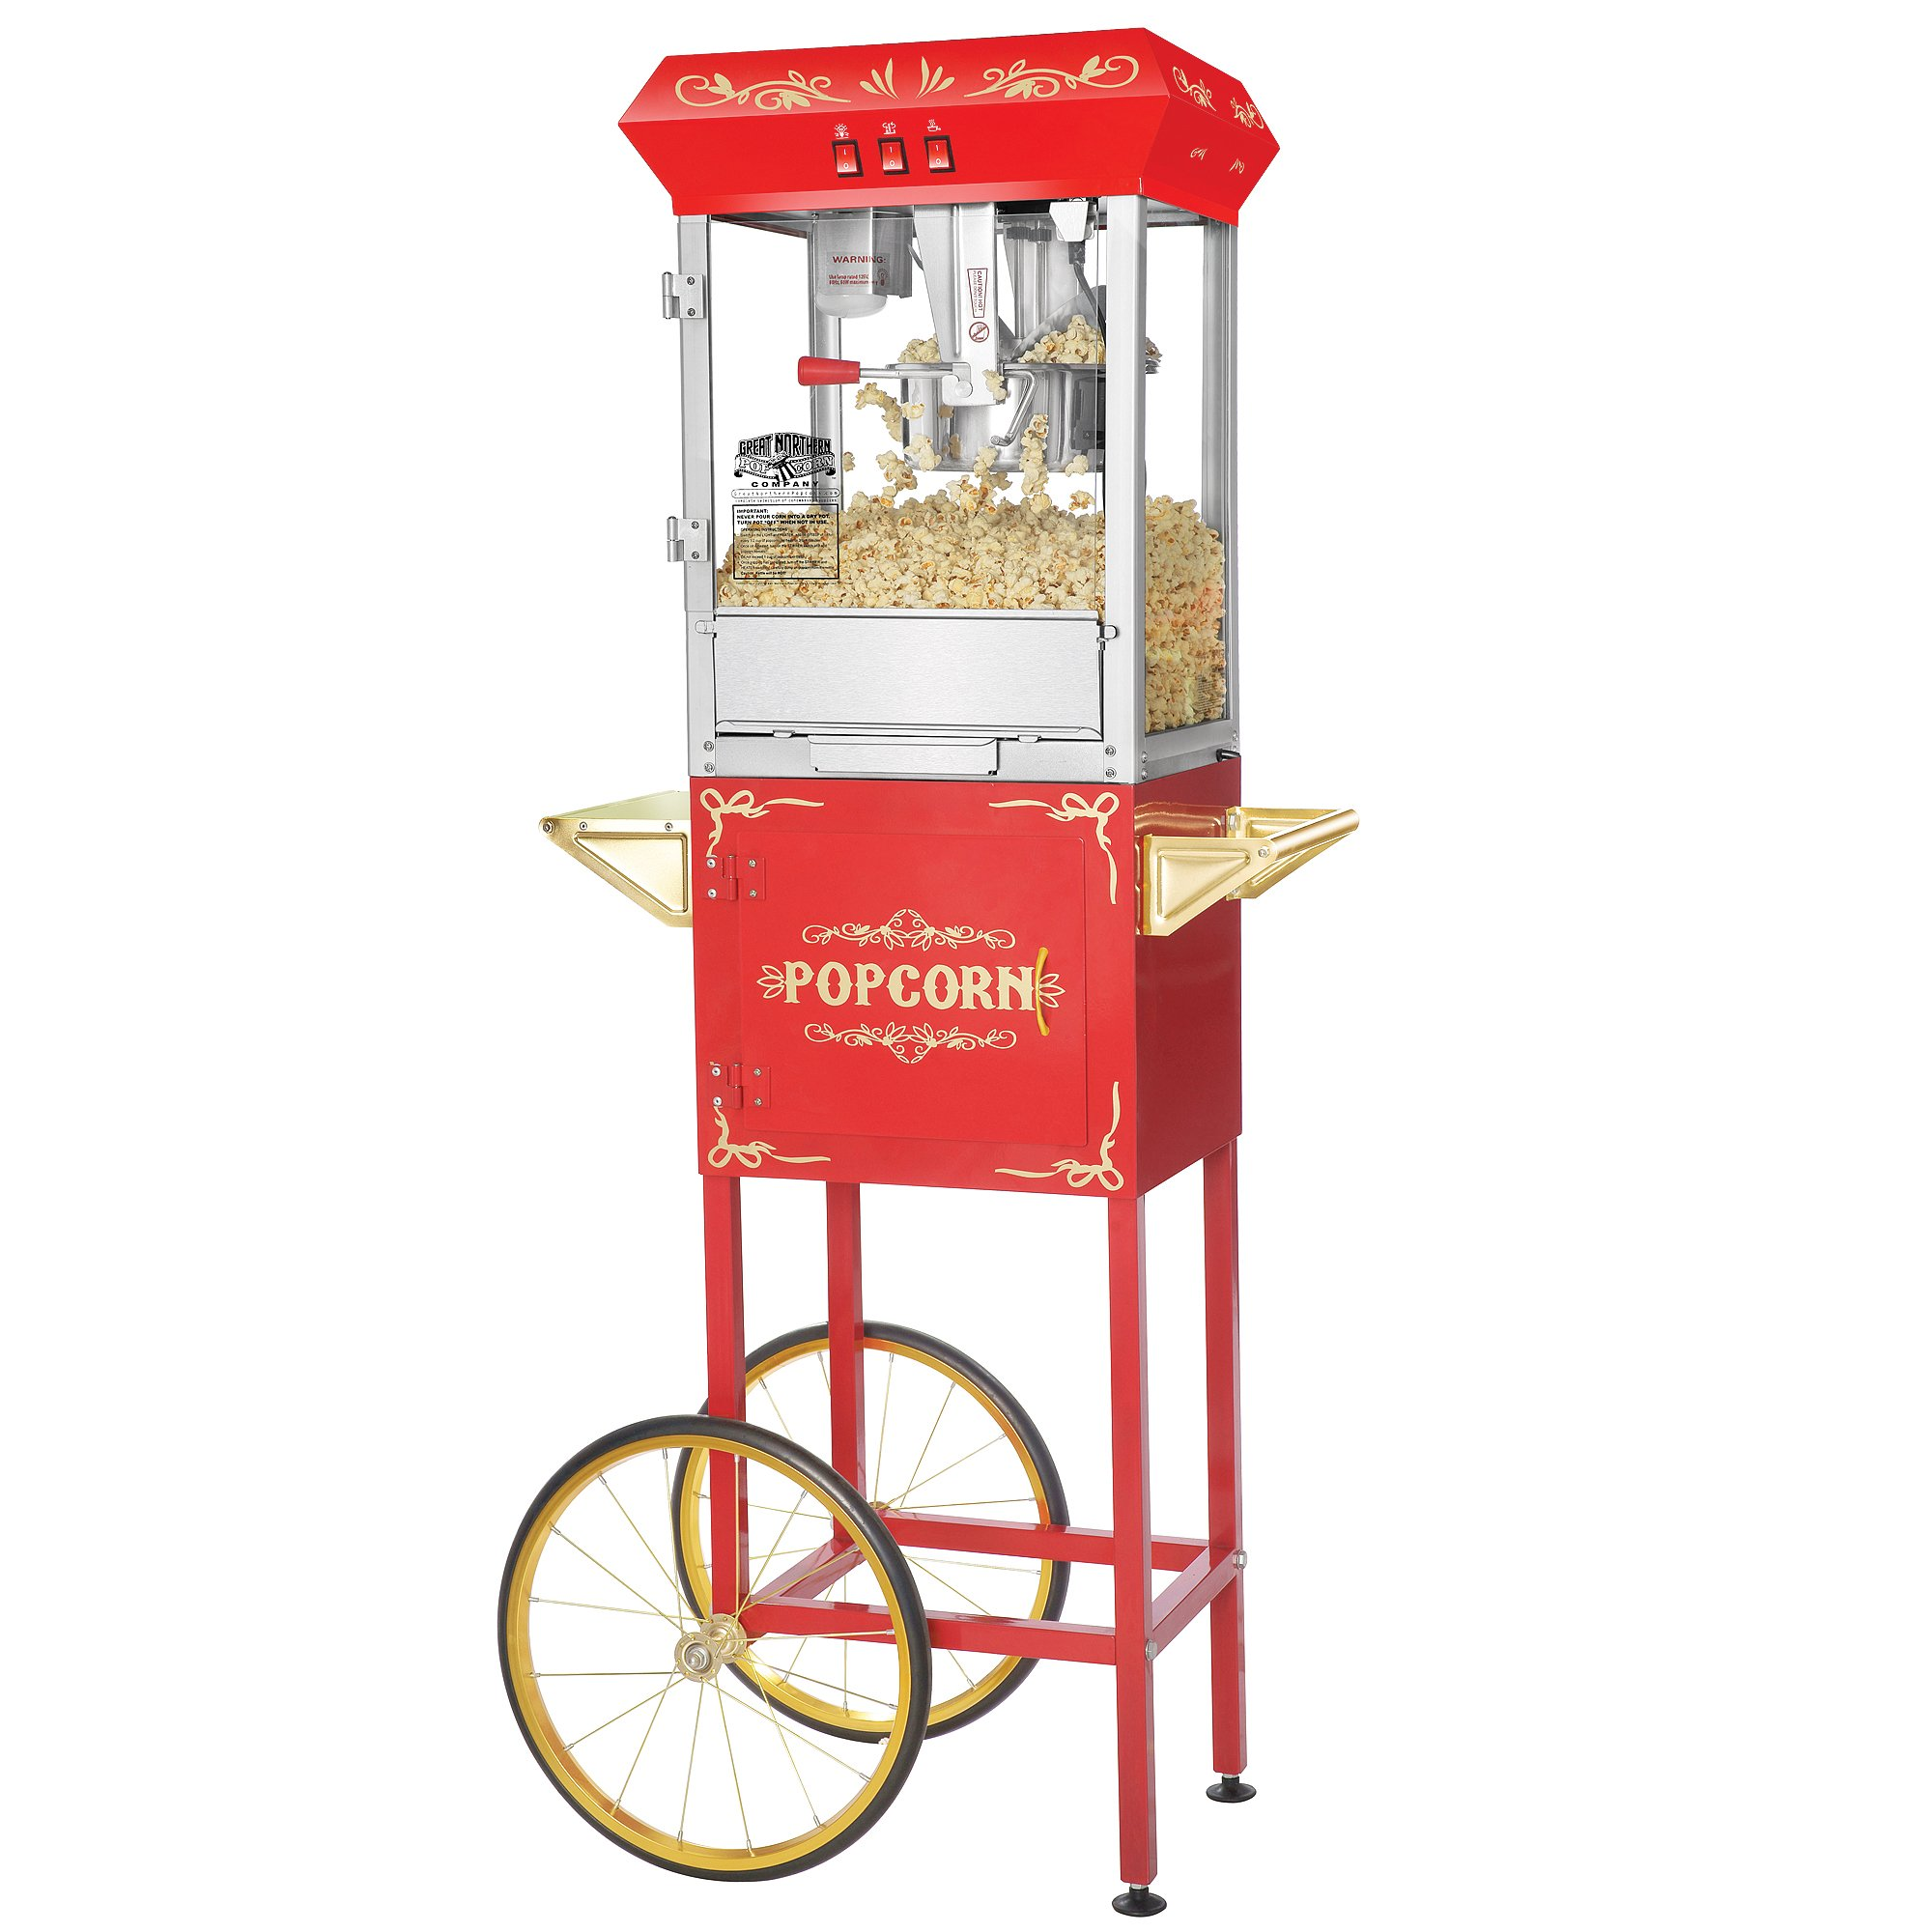 6097 Great Northern Popcorn Red Foundation Popcorn Popper Machine Cart, 8 Ounce by Great Northern Popcorn Company